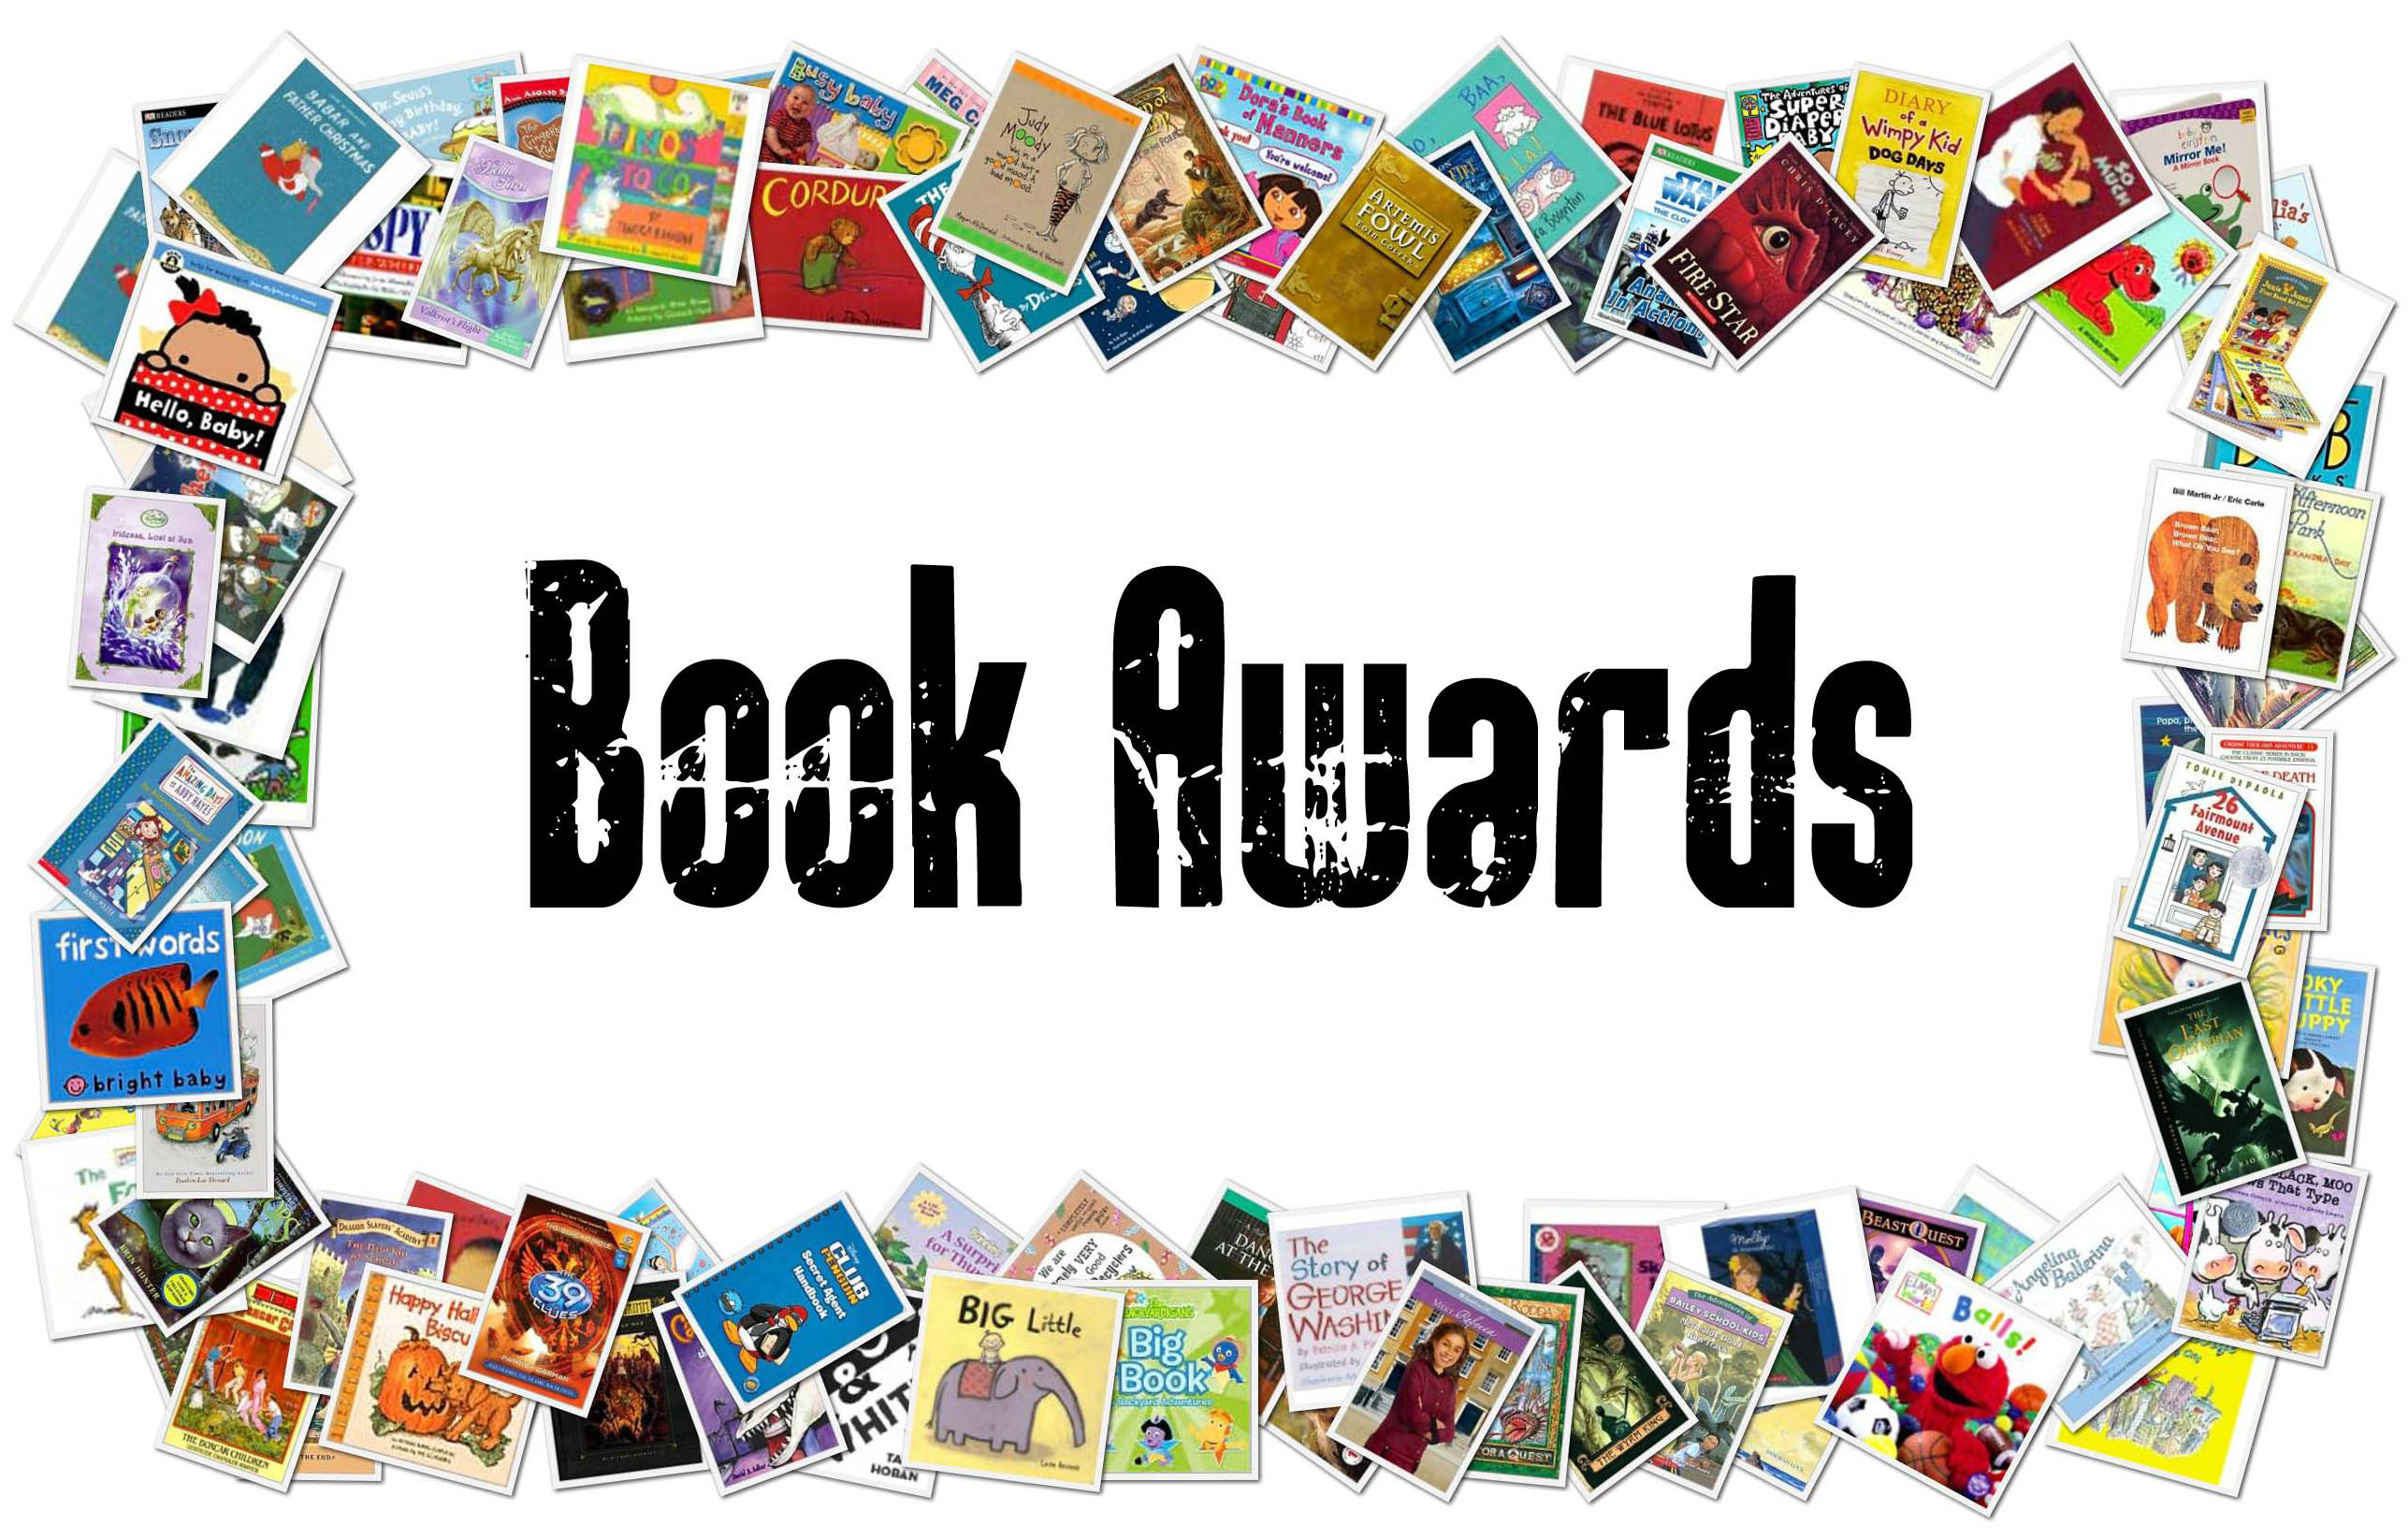 Broccoli Chronicles wins 2 book awards